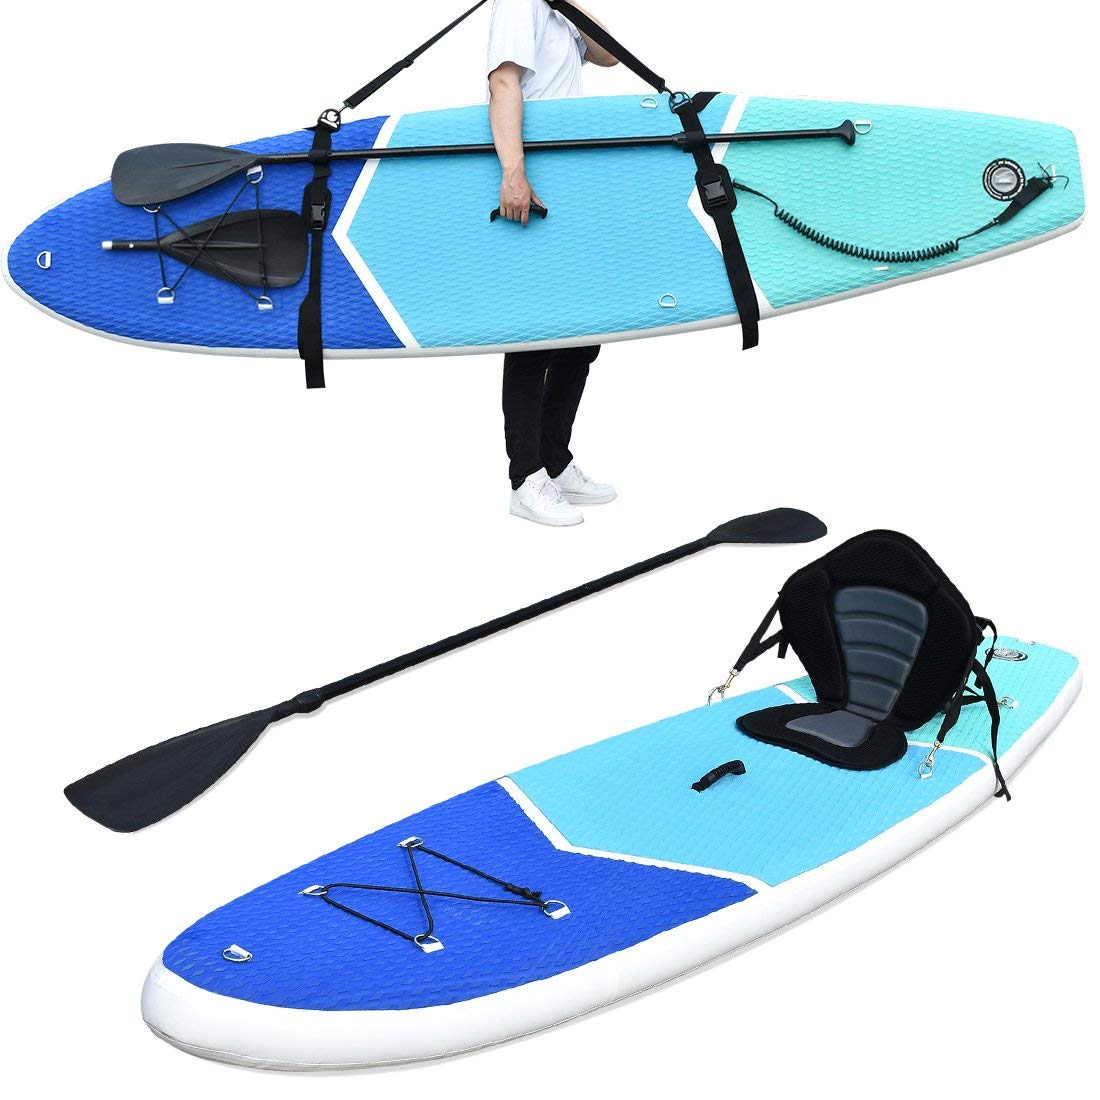 """Zupapa All in One Inflatable Stand Up Paddle Board 6"""" Thick 10' Non-Slip Deck with Kayak Conversion Kit, Shoulder... by"""